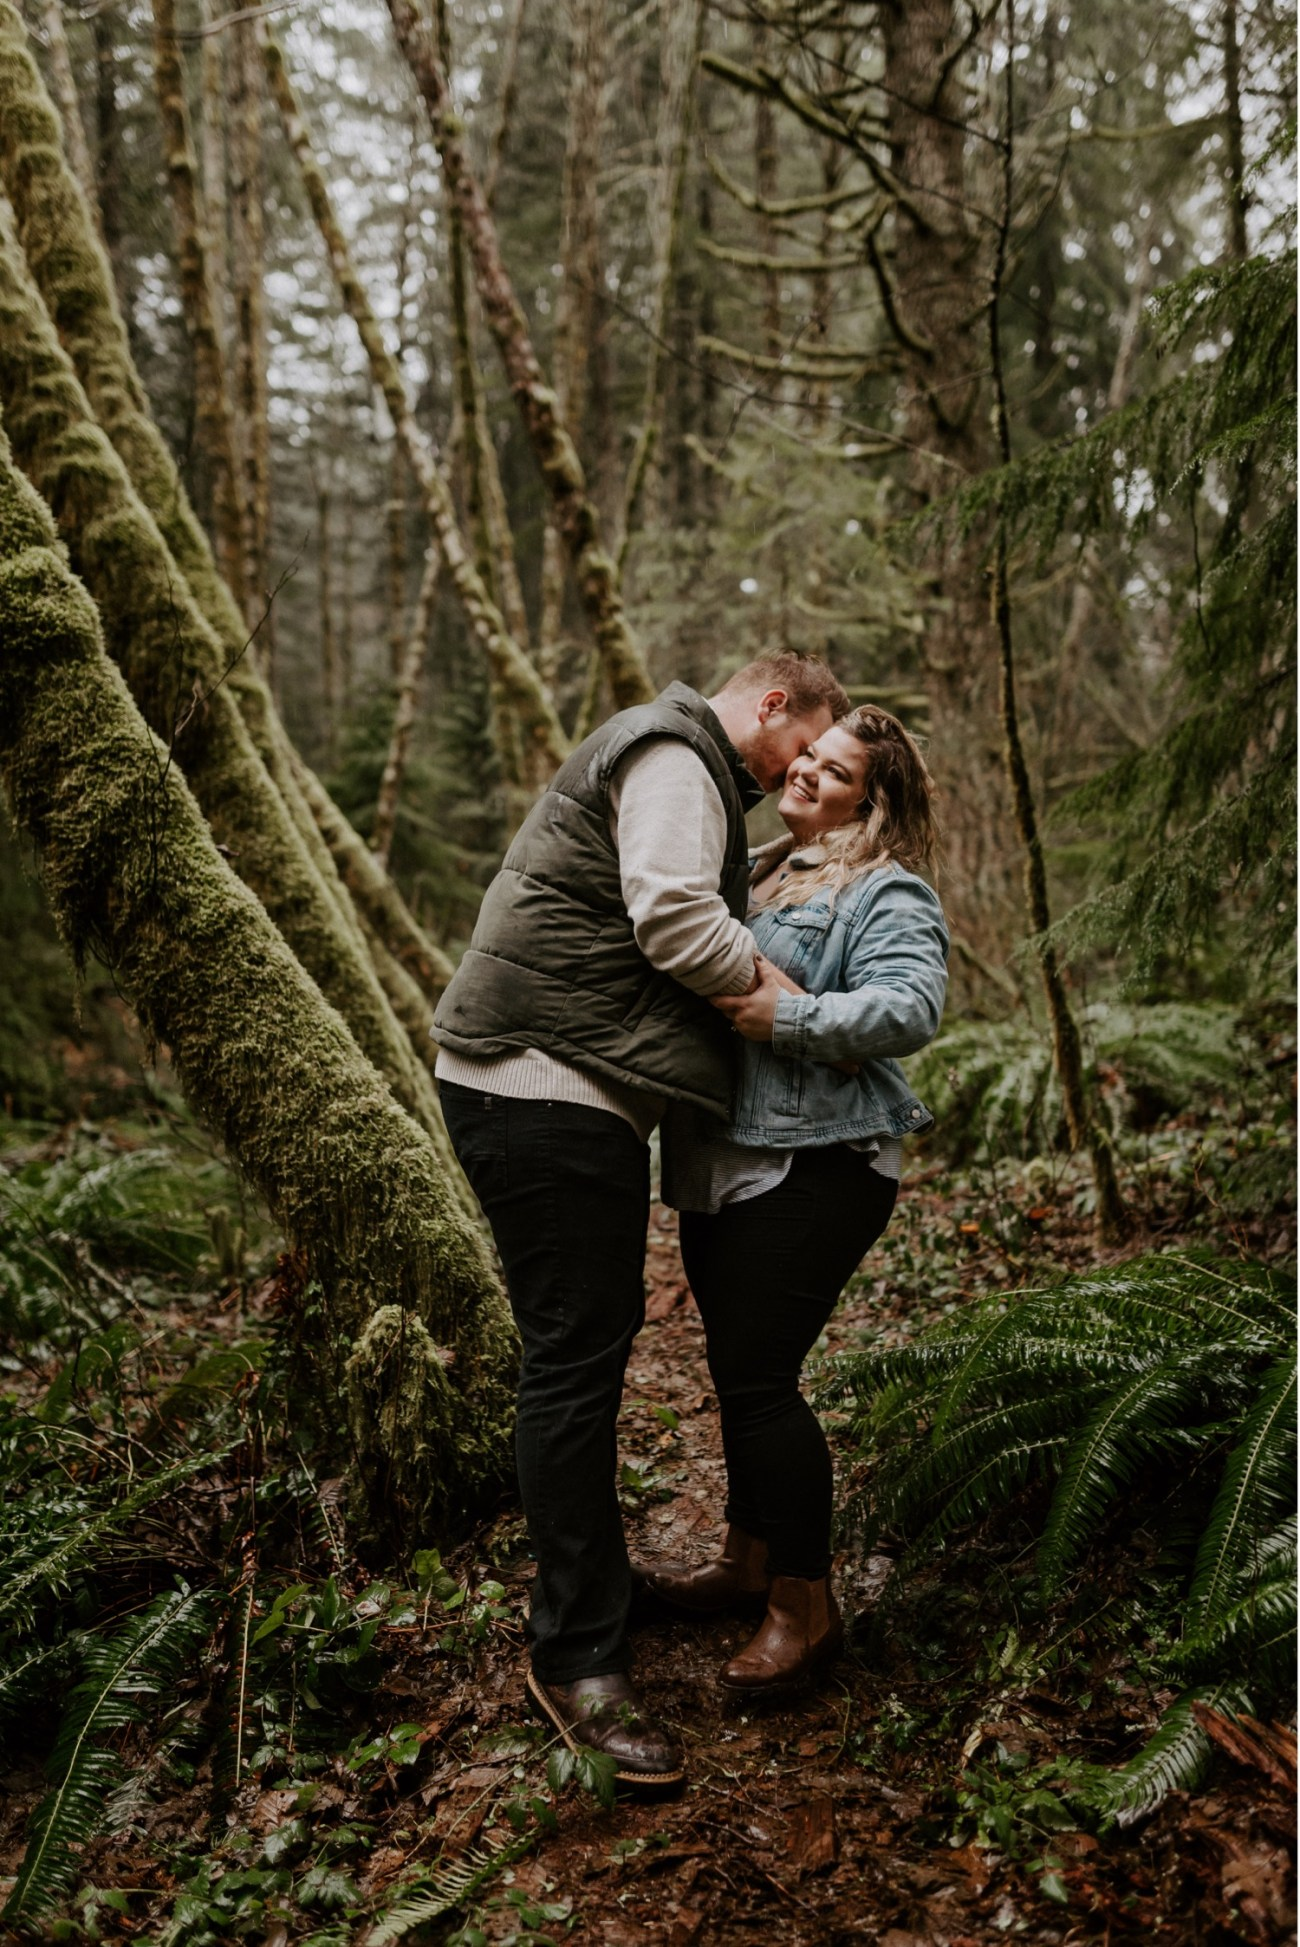 Mt Hood Engagement Photos Oregon Wedding Photographer Portland Elopement Photographer Anais Possamai Photography352